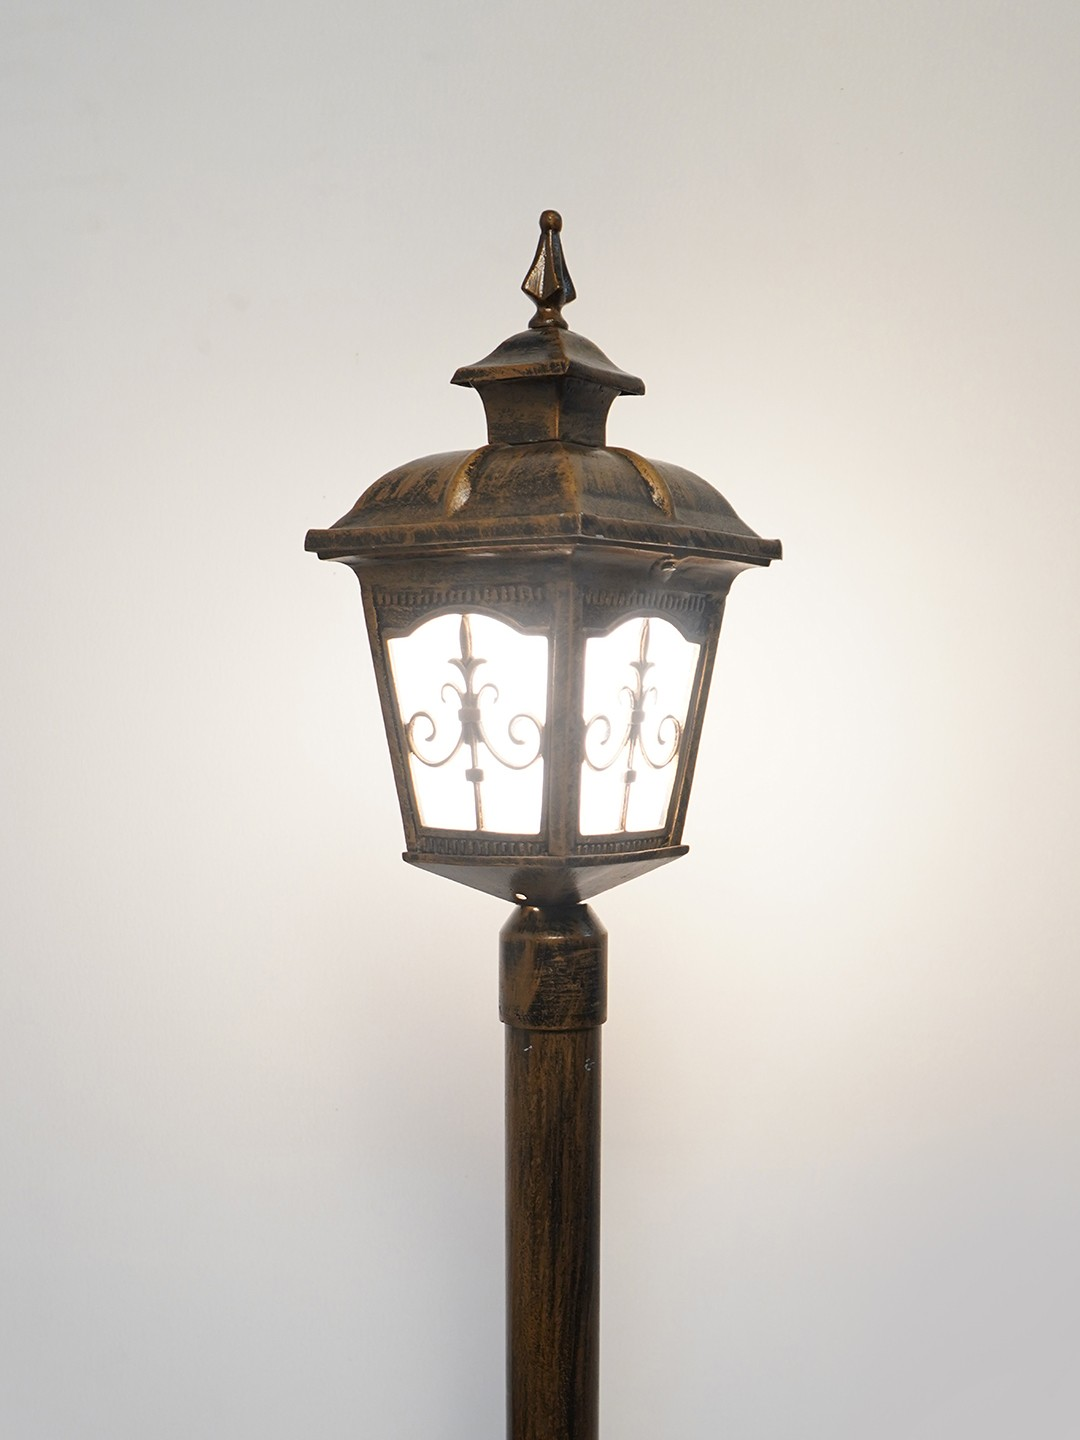 Lamp Post Lights Indoor/Outdoor, Vintage Street Light for Living Room, Lawn, Pathway, Driveway, Front/Back Door